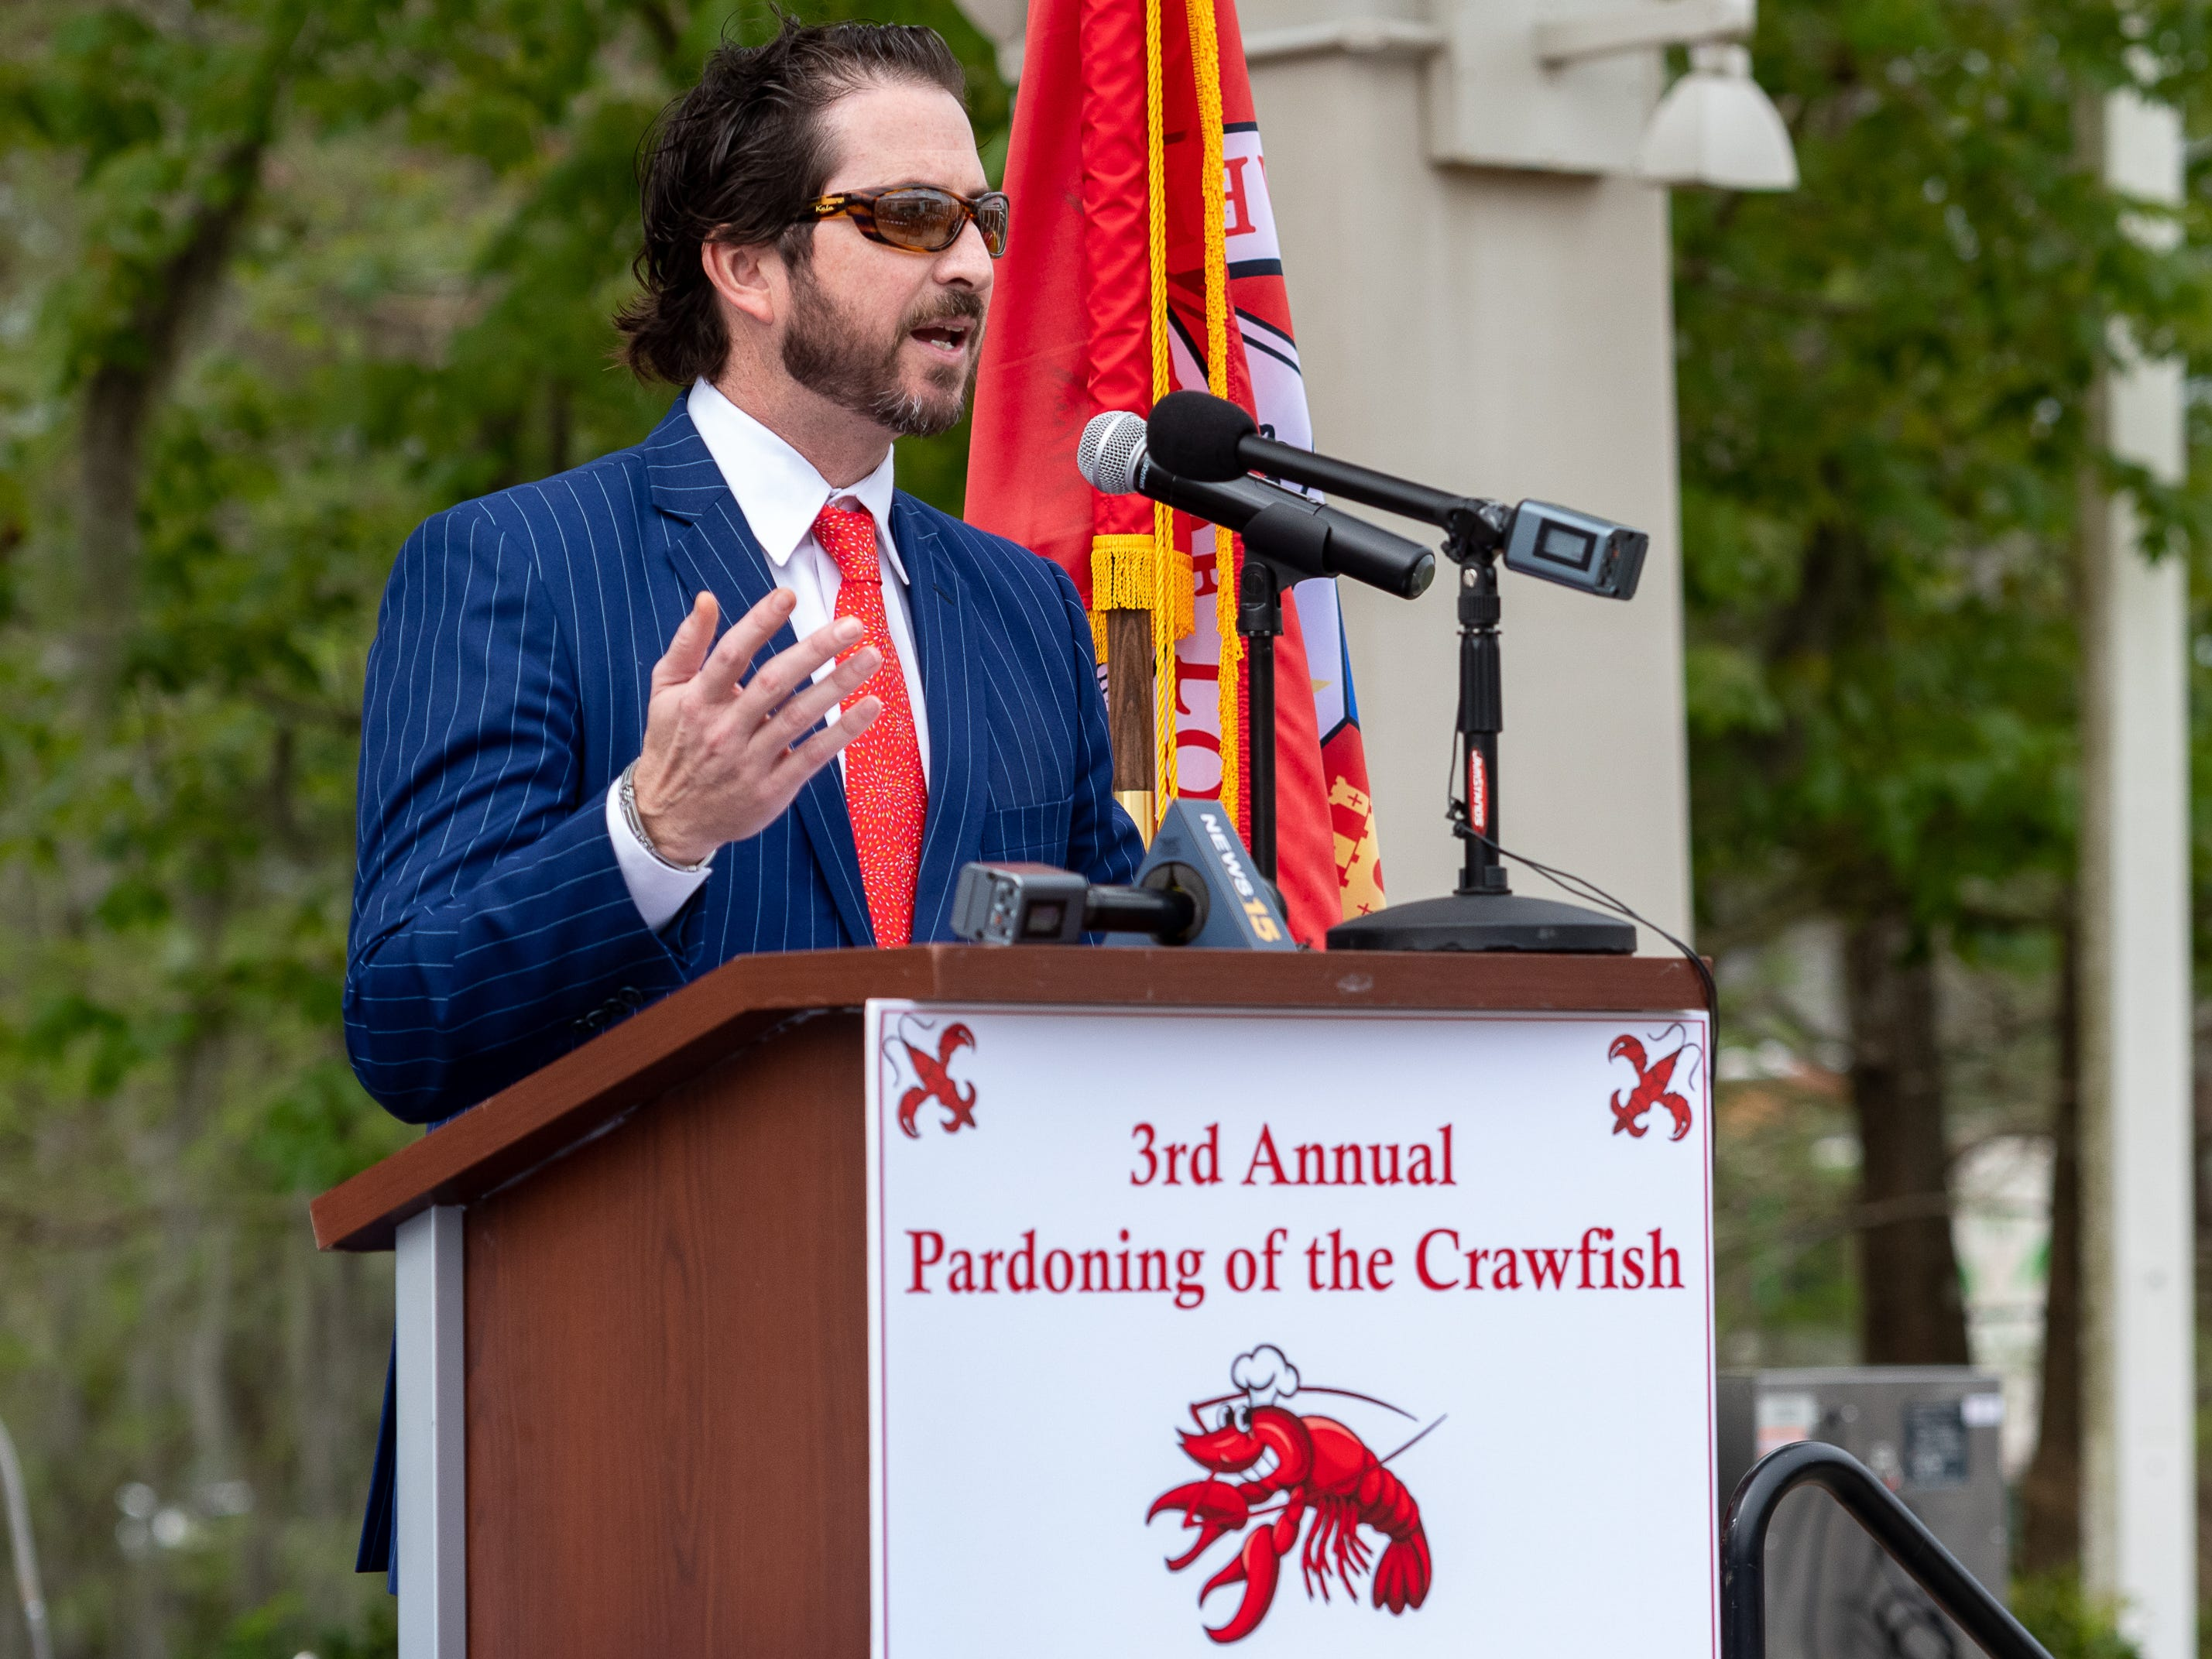 Louisiana Lieutenant Governor Billy Nungesser and the Louisiana Seafood Promotion and Marketing Board host the 3rd Annual Pardoning of the Crawfish at Cypress Lake Plaza on the campus of the University of Louisiana at Lafayette. Started in 2017 by Lt. Governor Nungesser, this unique event celebrates crawfish season in Louisiana and across the Gulf South. Tuesday, March 12, 2019. (Pictured- Ben Berthelot- President & CEO Lafayette Convention and Visitors Commission)